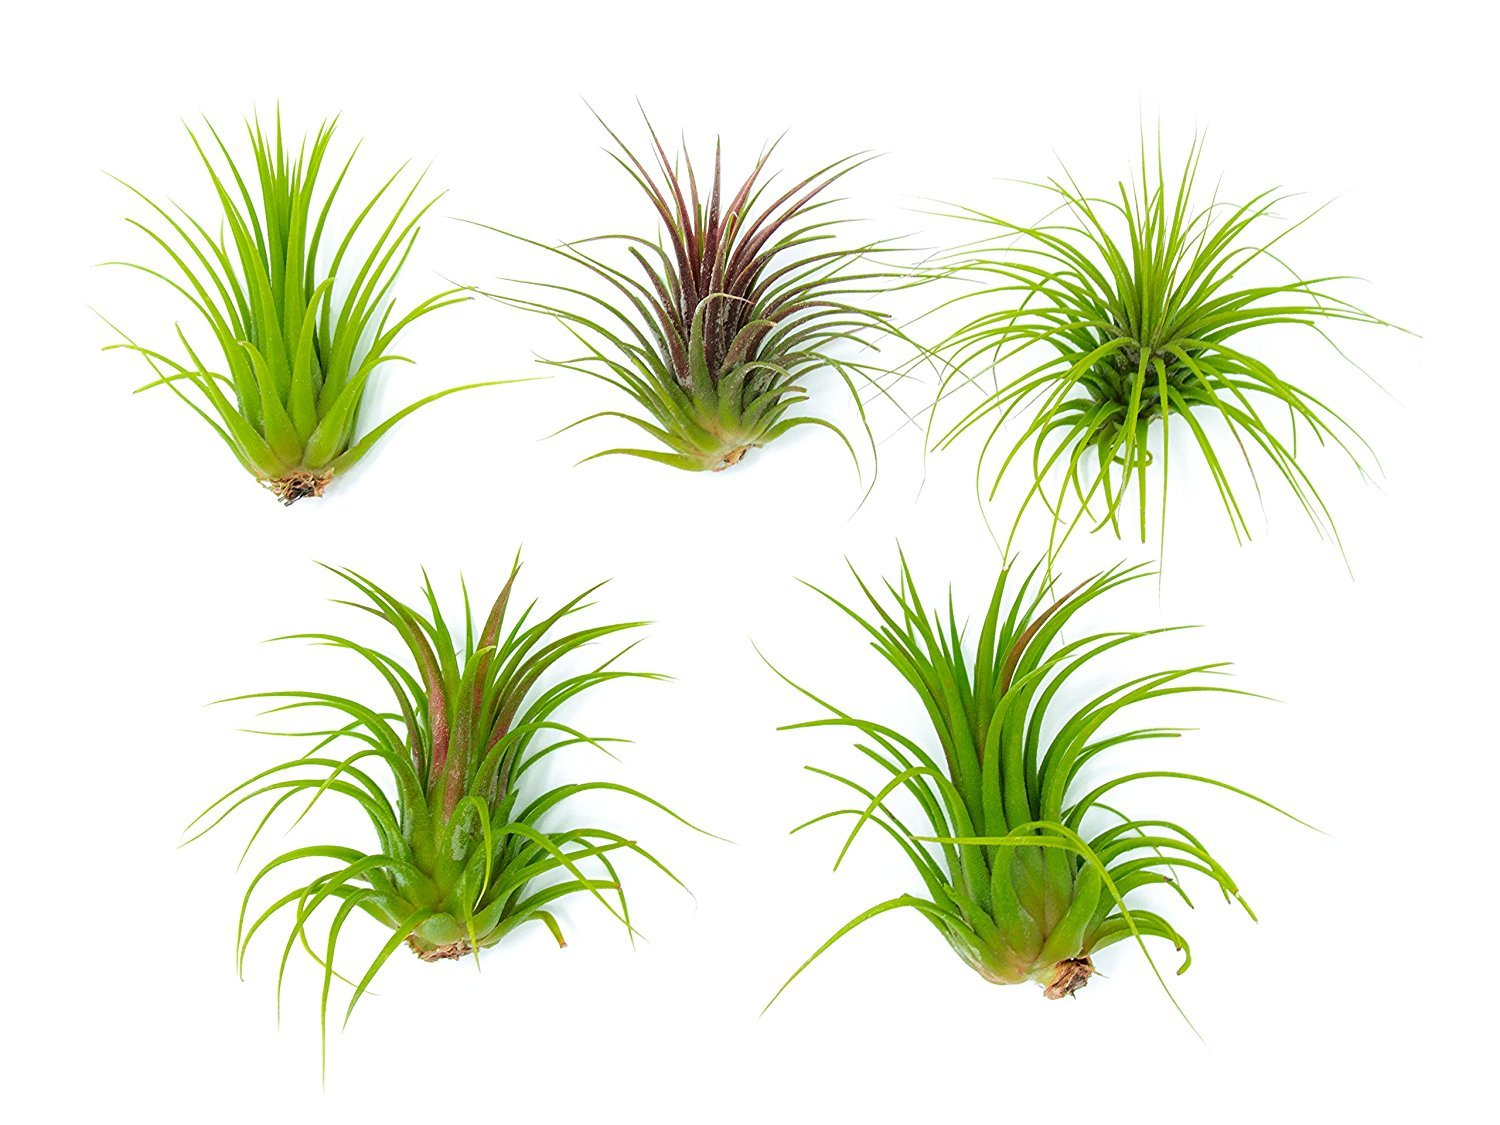 6 Lowlight Air Plant Pack - Live Low-Light Plants/Indoor Tropical Tillandsia Houseplant Kit -  Nature Wall Decor/Easy Decorative Centerpiece - Natural Low Light Decorations by Aquatic Arts by Plants for Pets